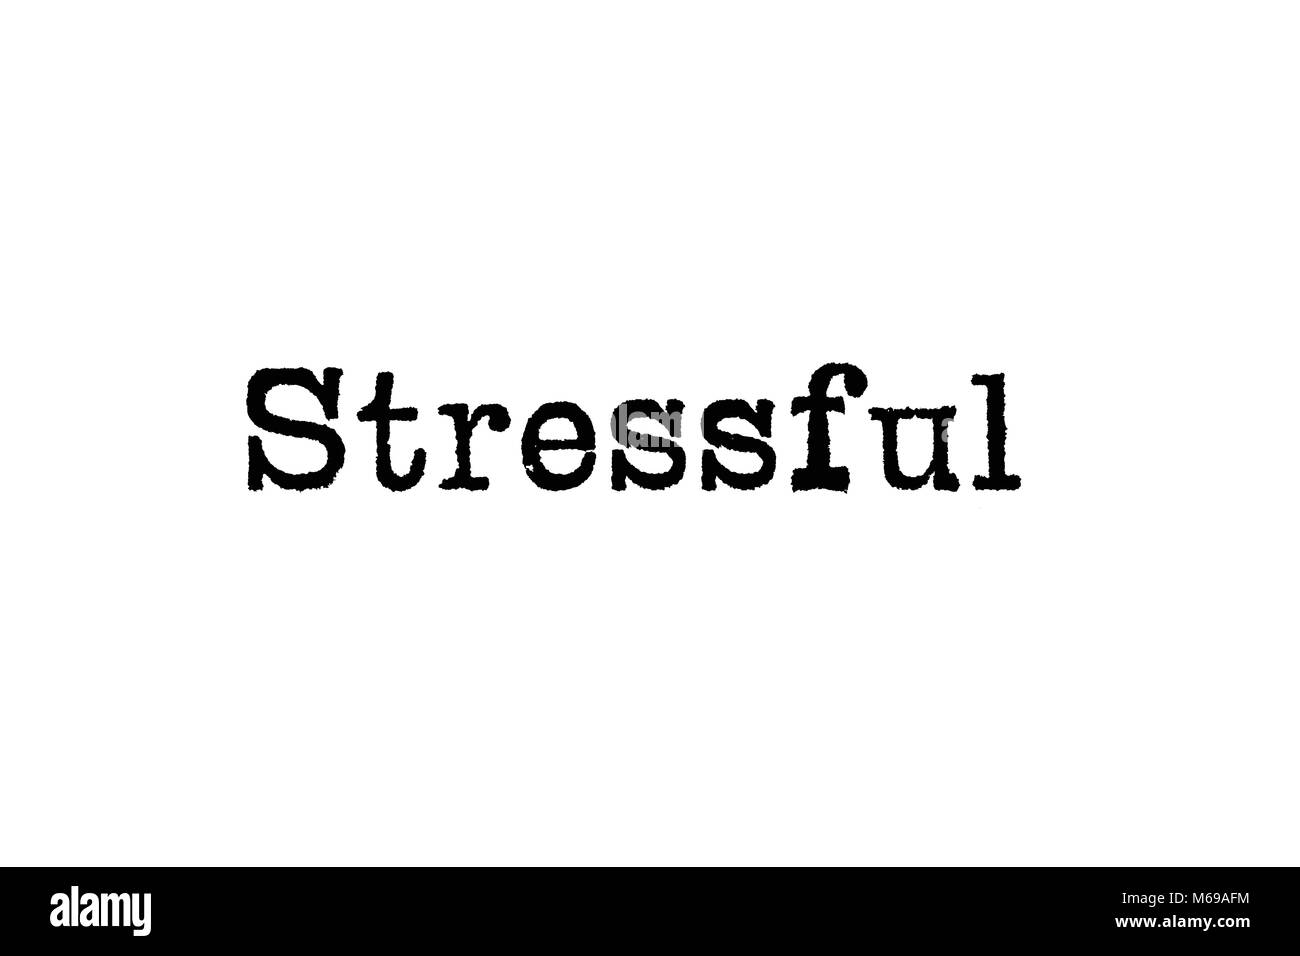 The word Stressful from a typewriter on a white background - Stock Image